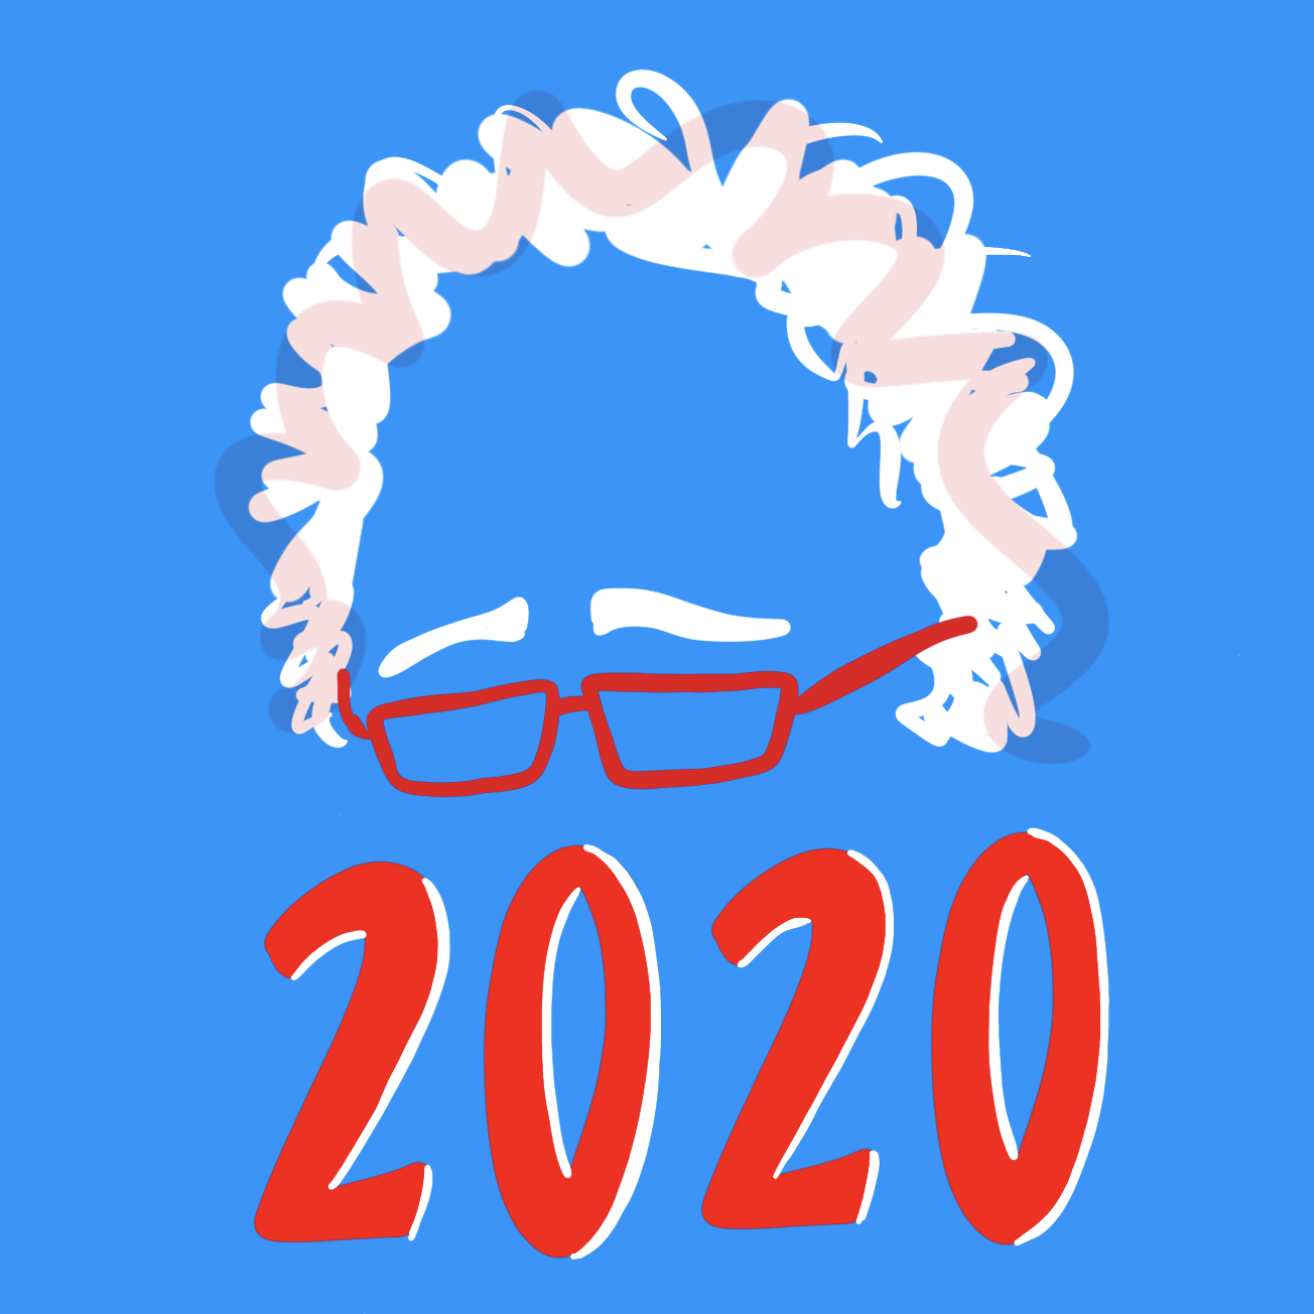 Bernie sanders logo clipart banner free library Bernie Sanders could push Democrats left - The Bucknellian banner free library